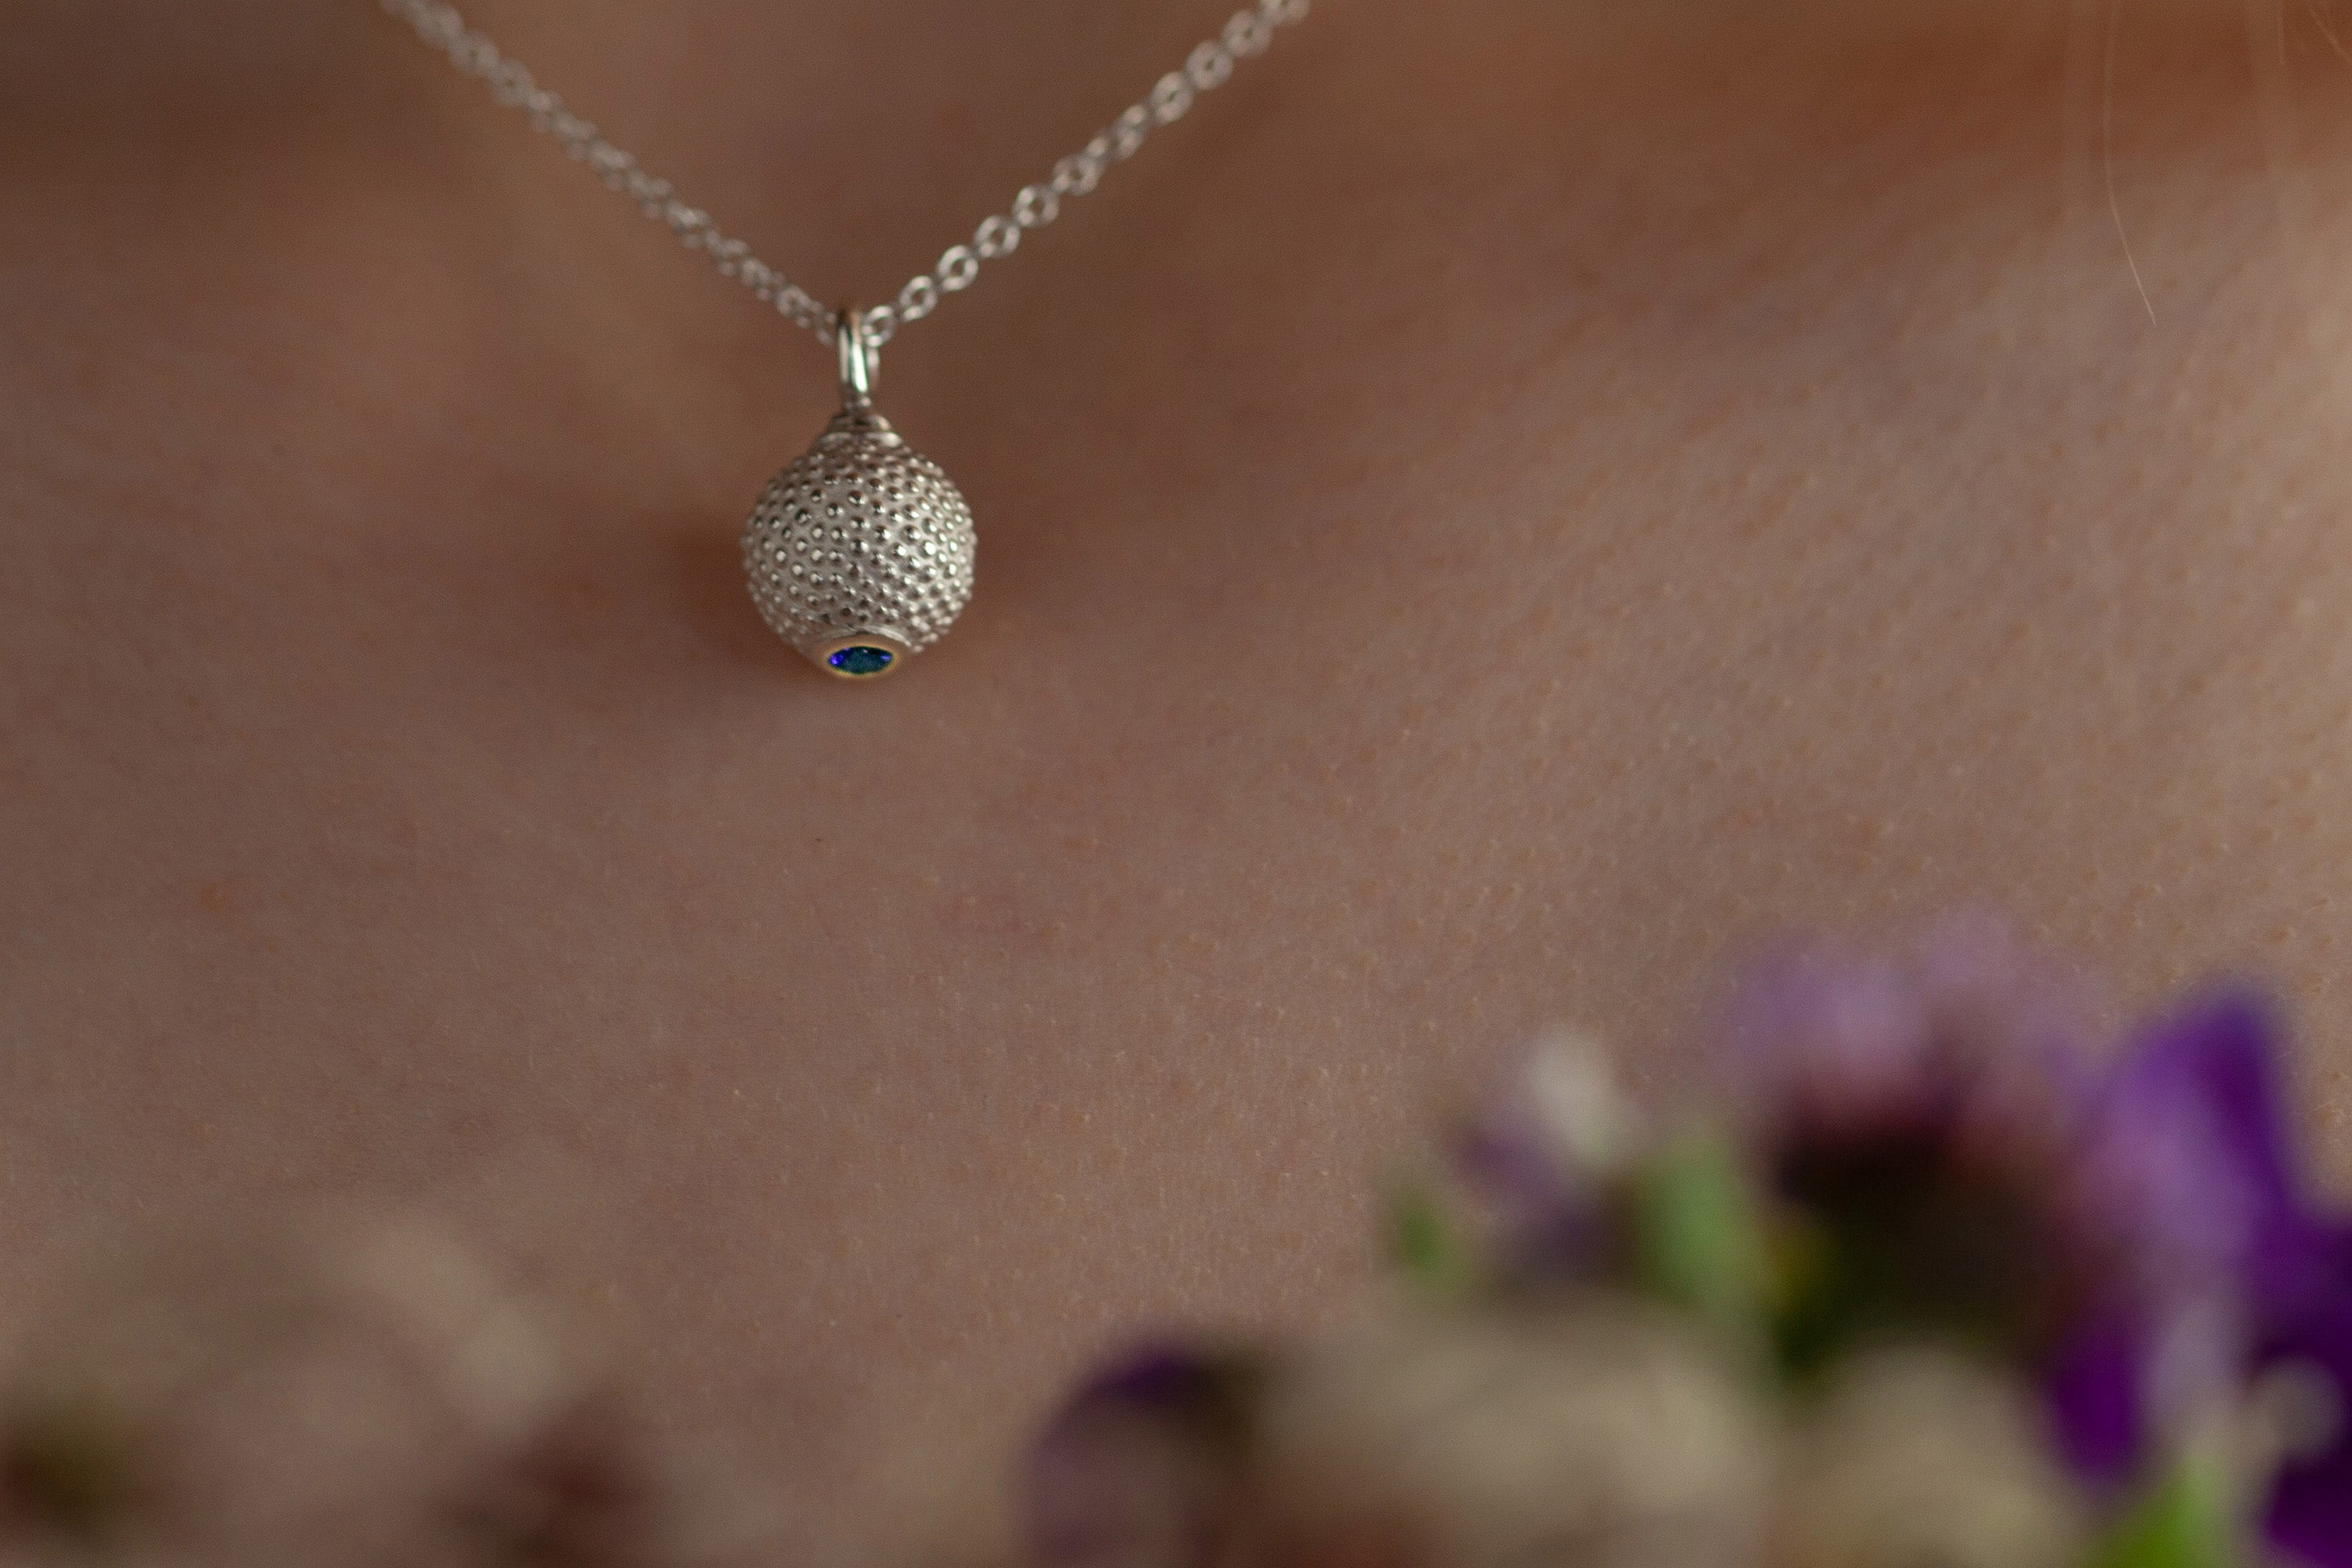 Catherine Hills Jewellery - Birthstone Ball and Chain Pendant Necklace